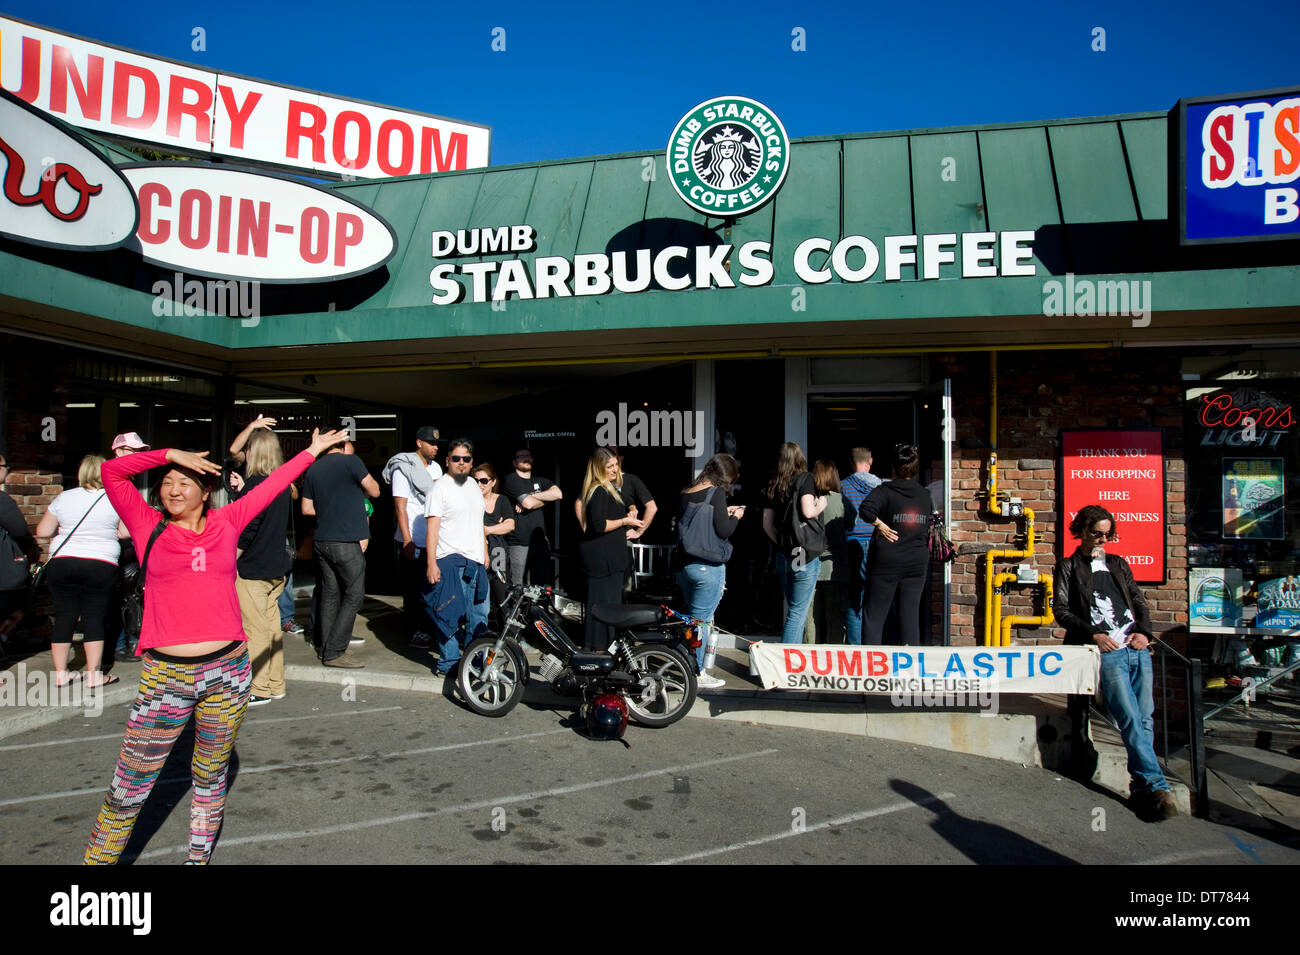 Los Angeles, California, USA. 10th February 2014. Feb 10 2014. Dumb Starbucks in Los Angeles California draws a crowd for free coffee. Credit:  Robert Landau/Alamy Live News - Stock Image